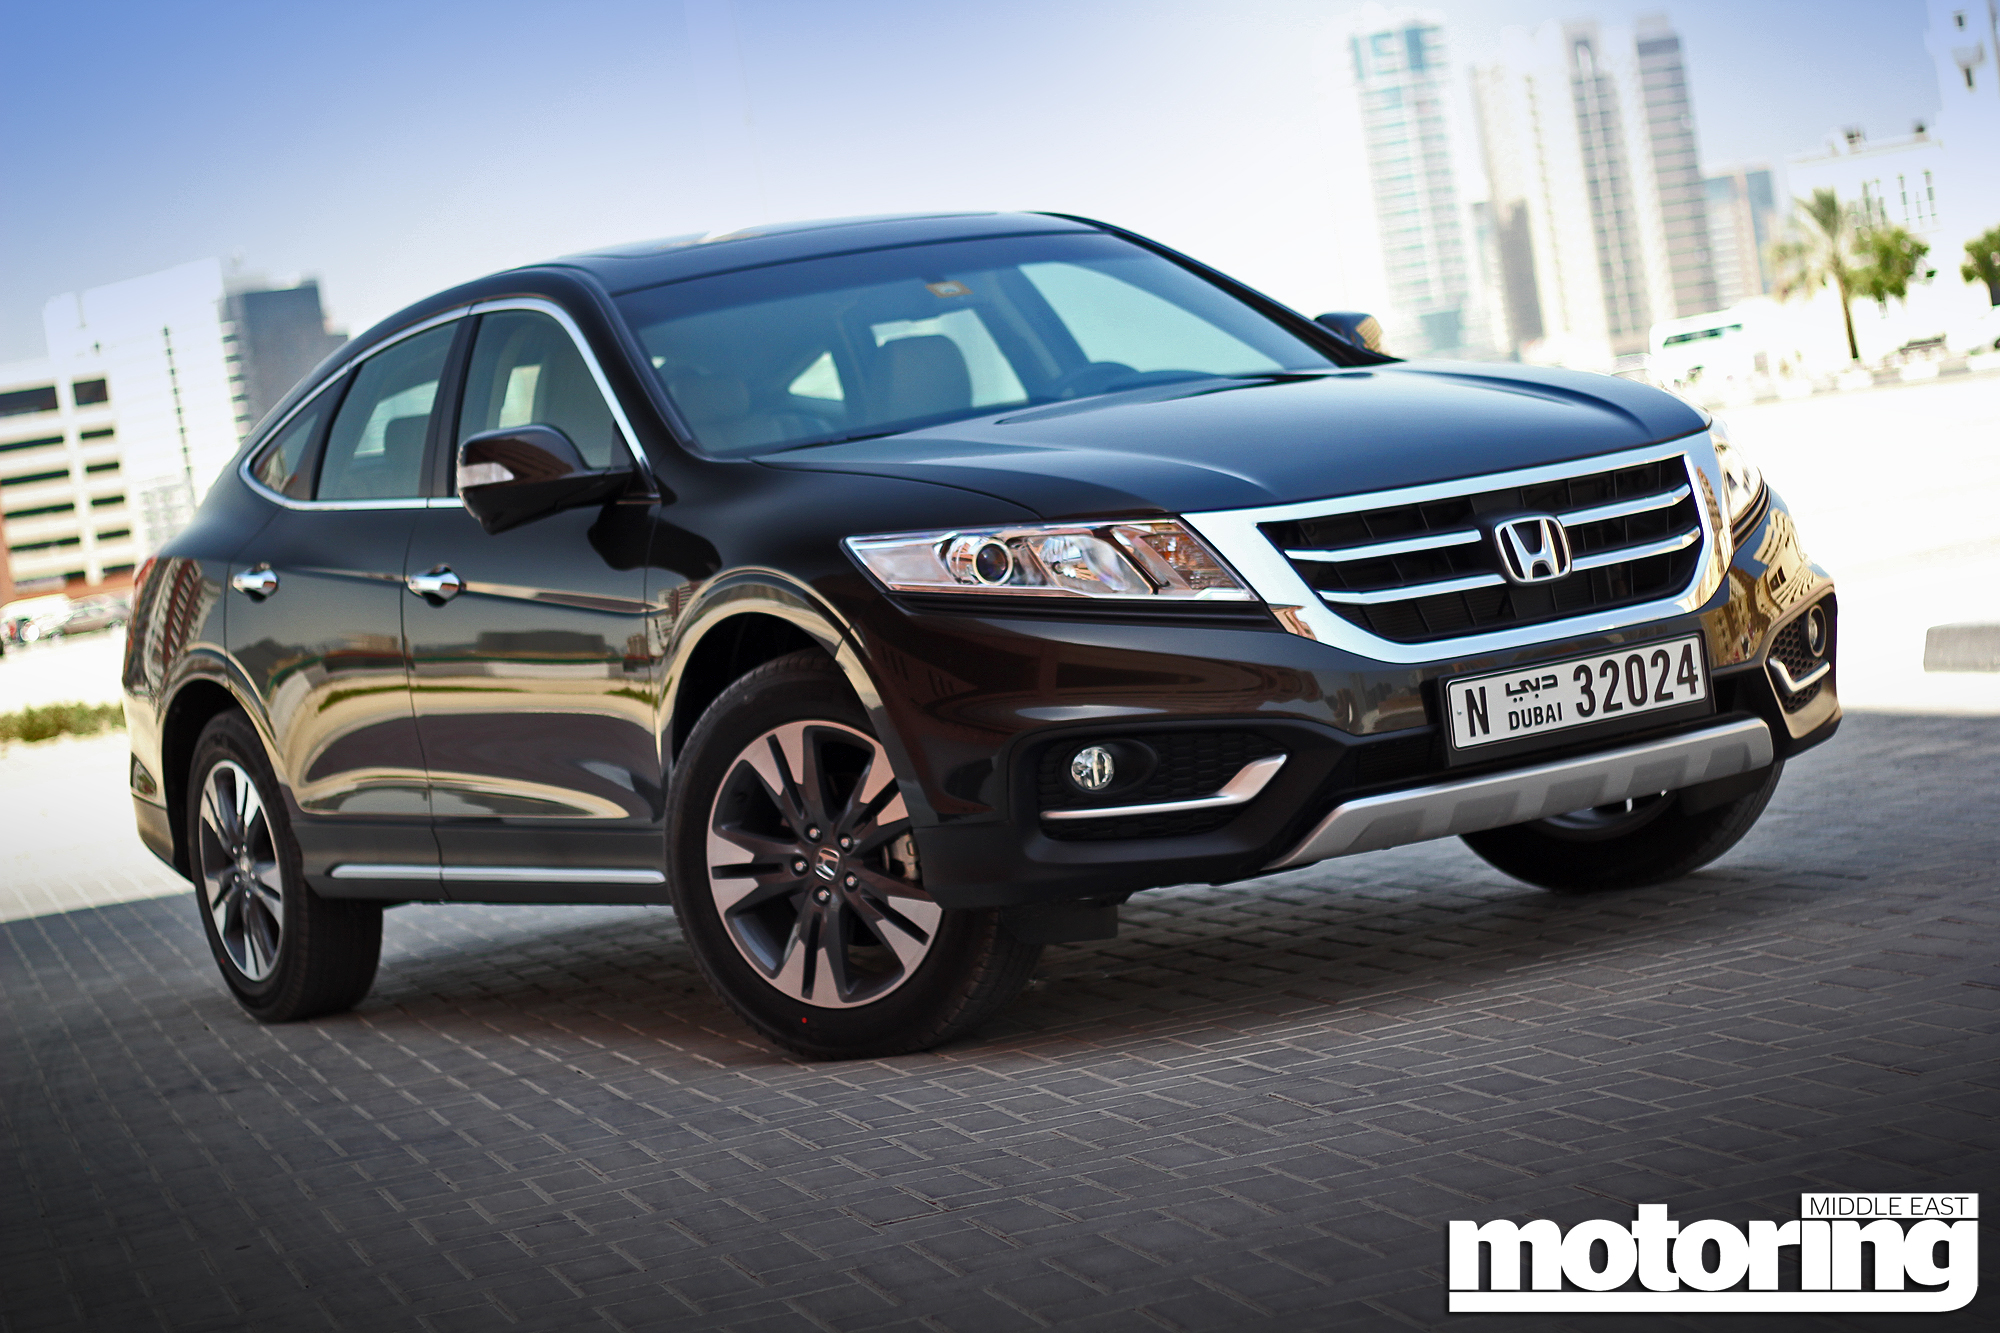 2013 honda crosstour review   motoring middle east car news reviews and buying guidesmotoring